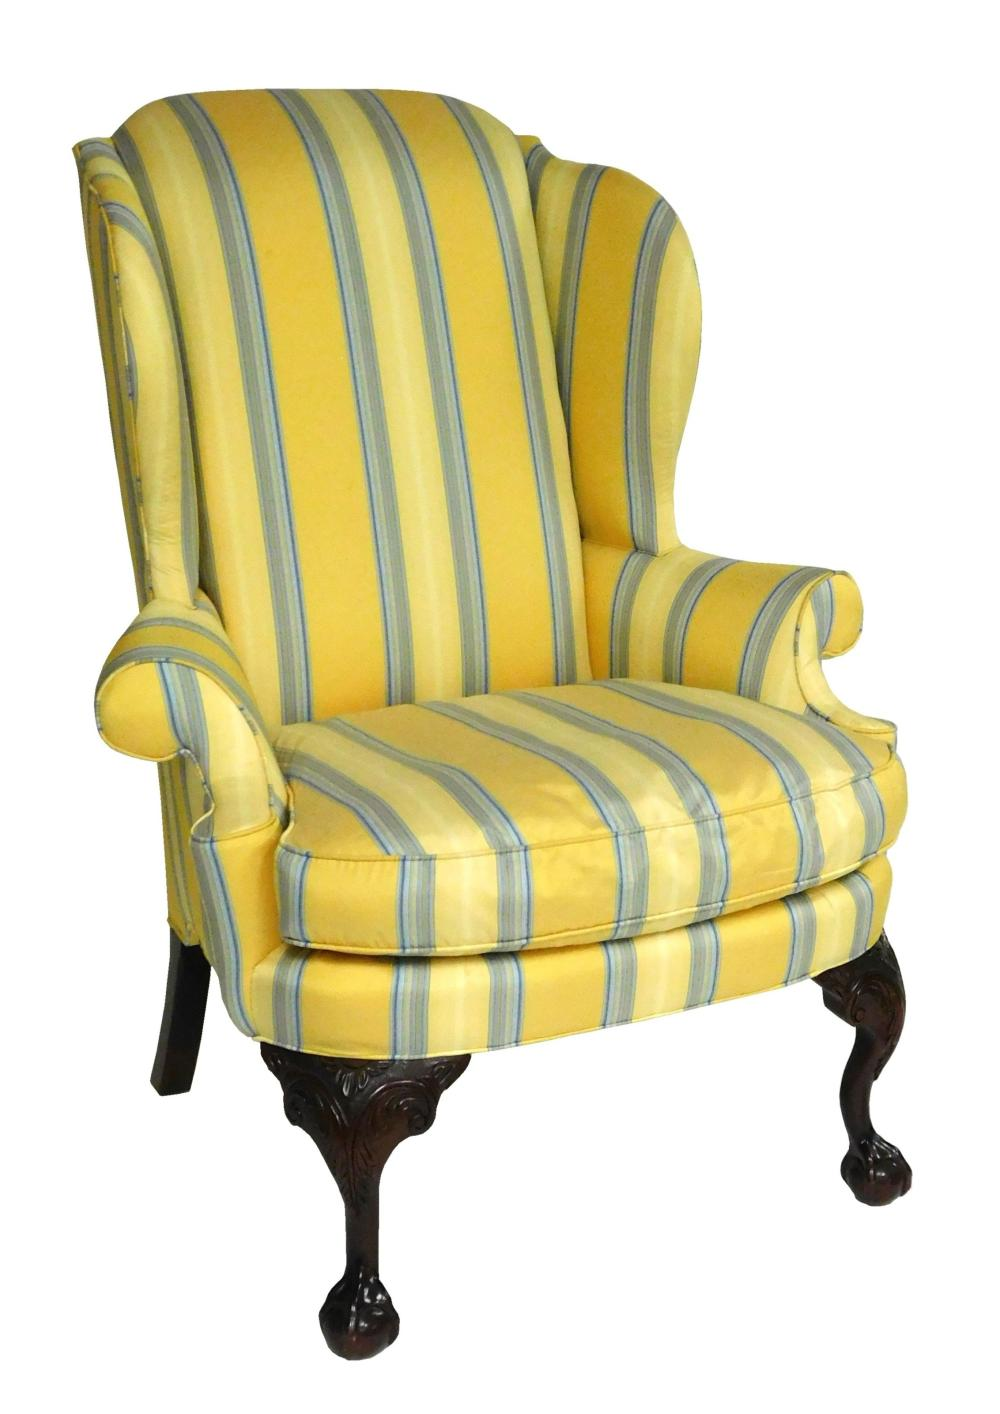 Chippendale style wing chair and companion ottoman by Century Furniture, Hickory, N.C., both with yellow and blue silk-type upholste...